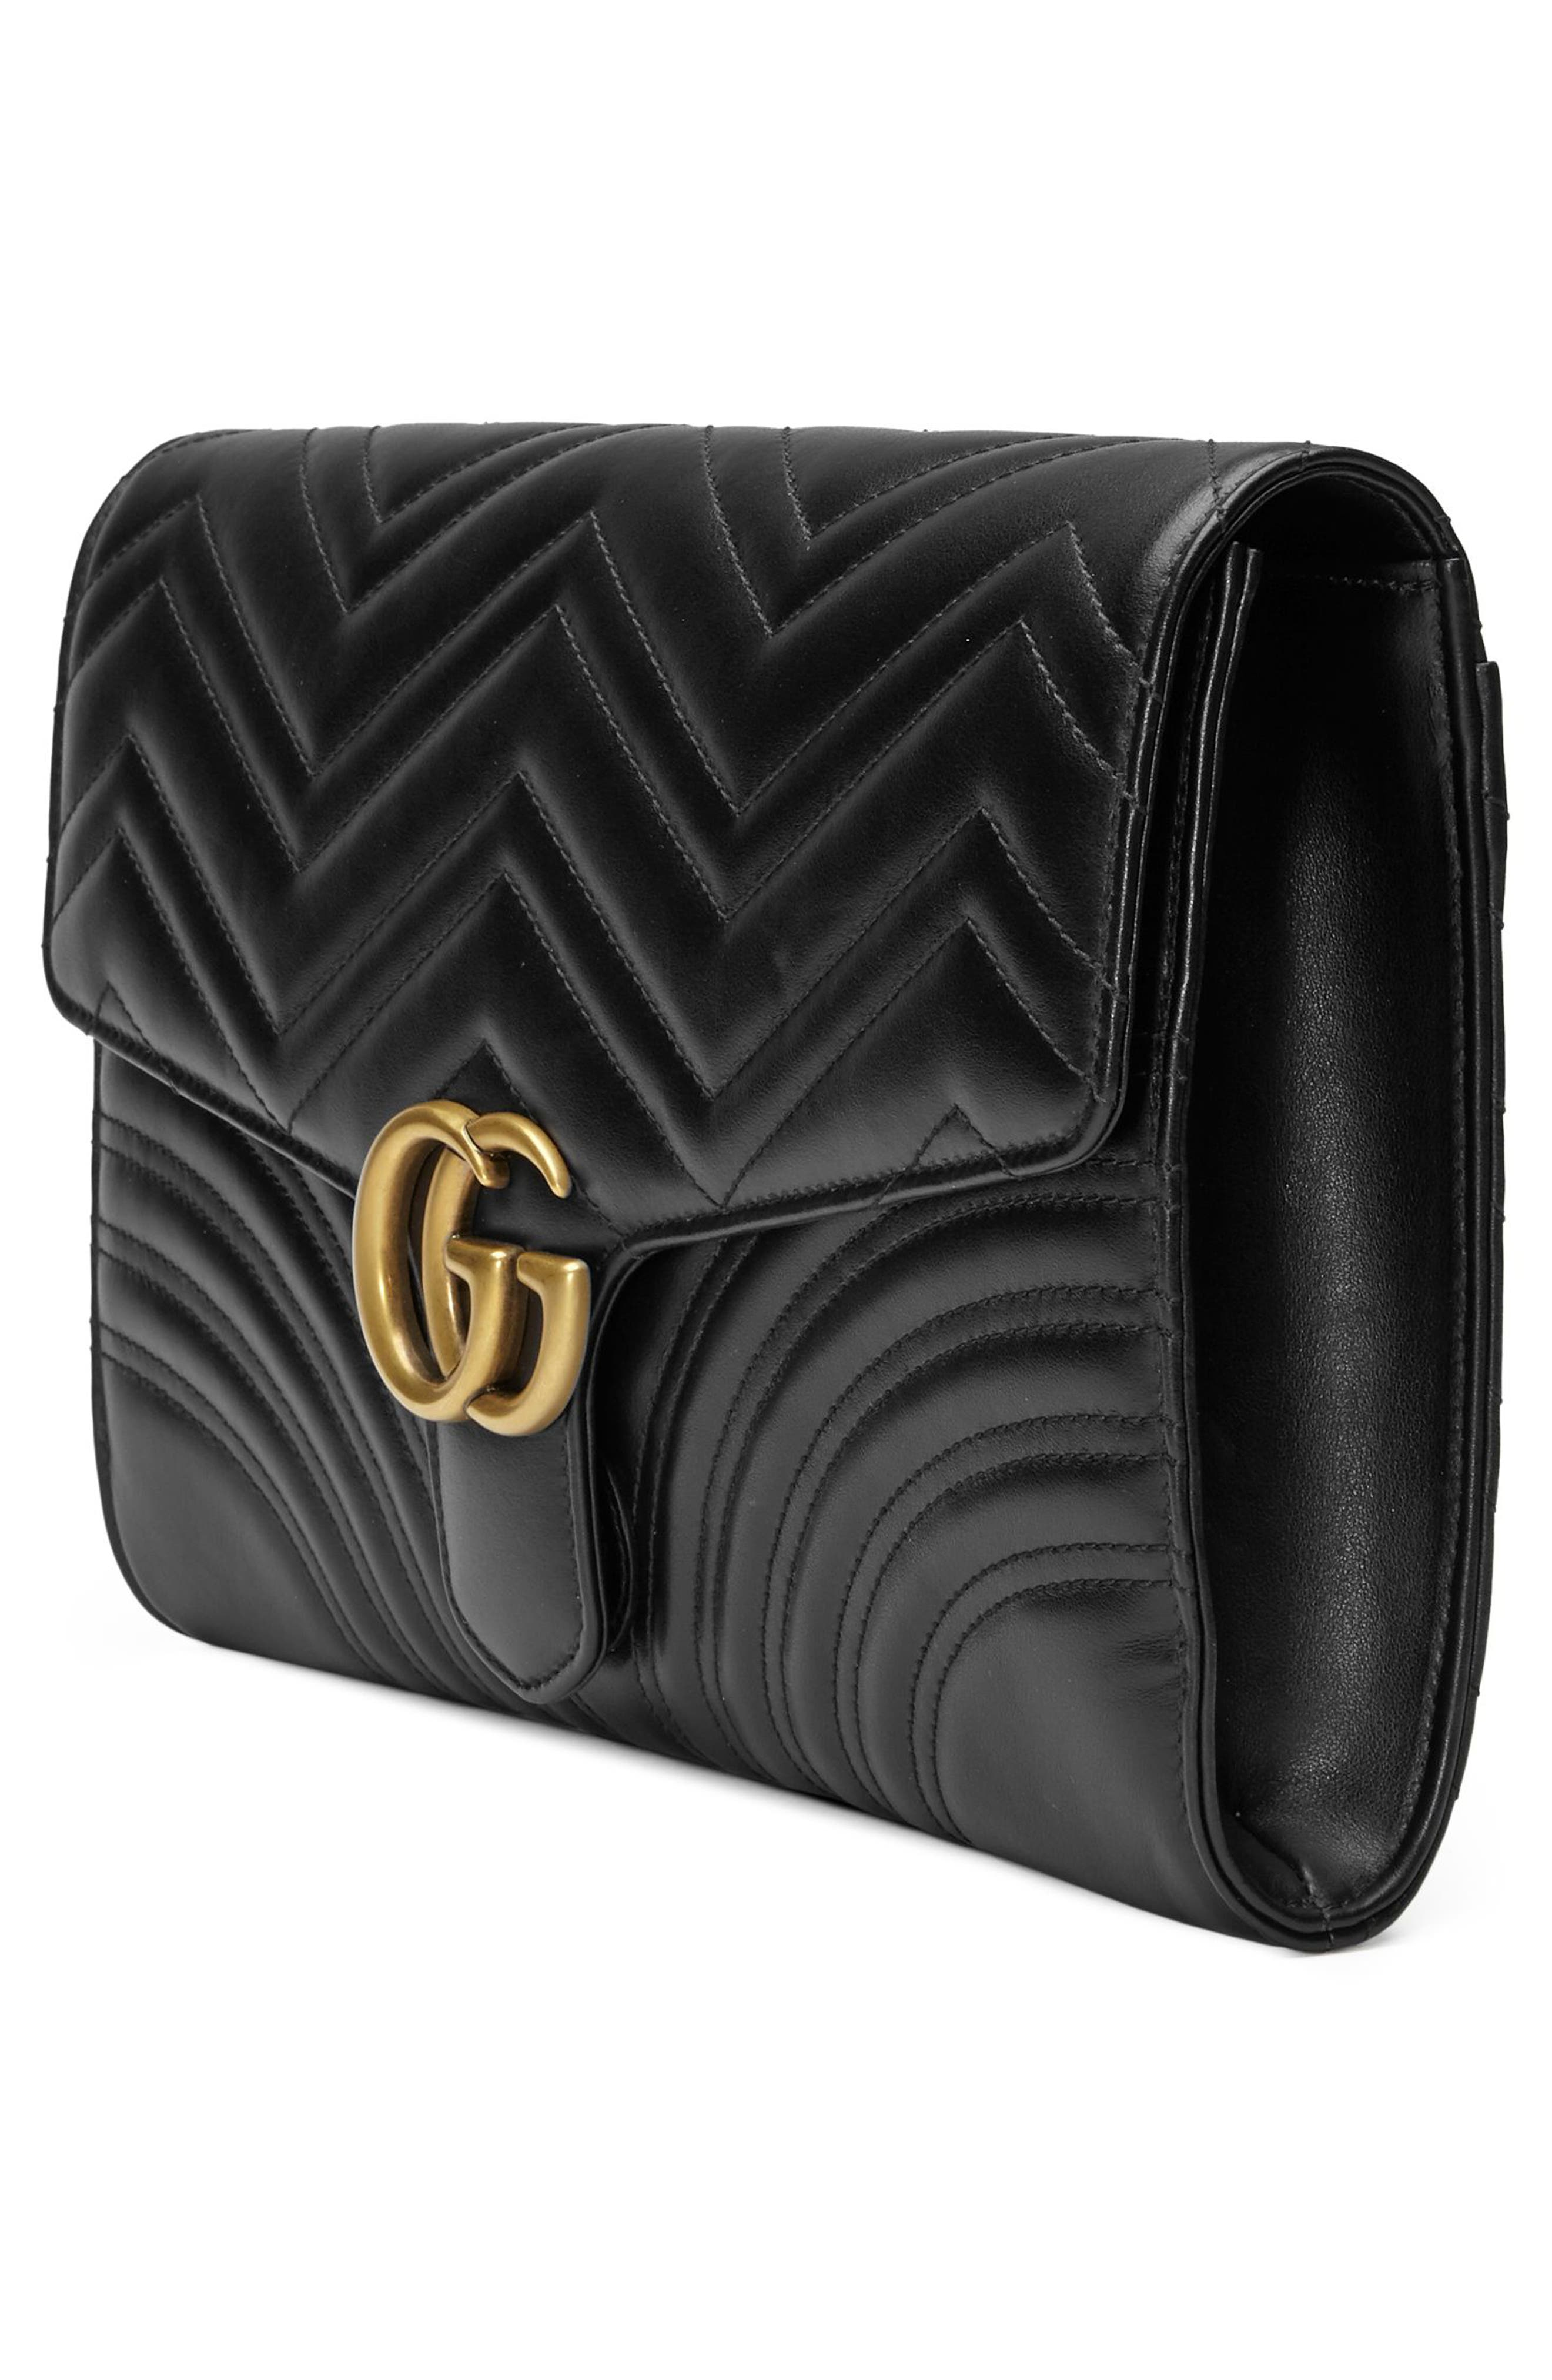 GG Marmont 2.0 Matelassé Leather Clutch,                             Alternate thumbnail 4, color,                             005